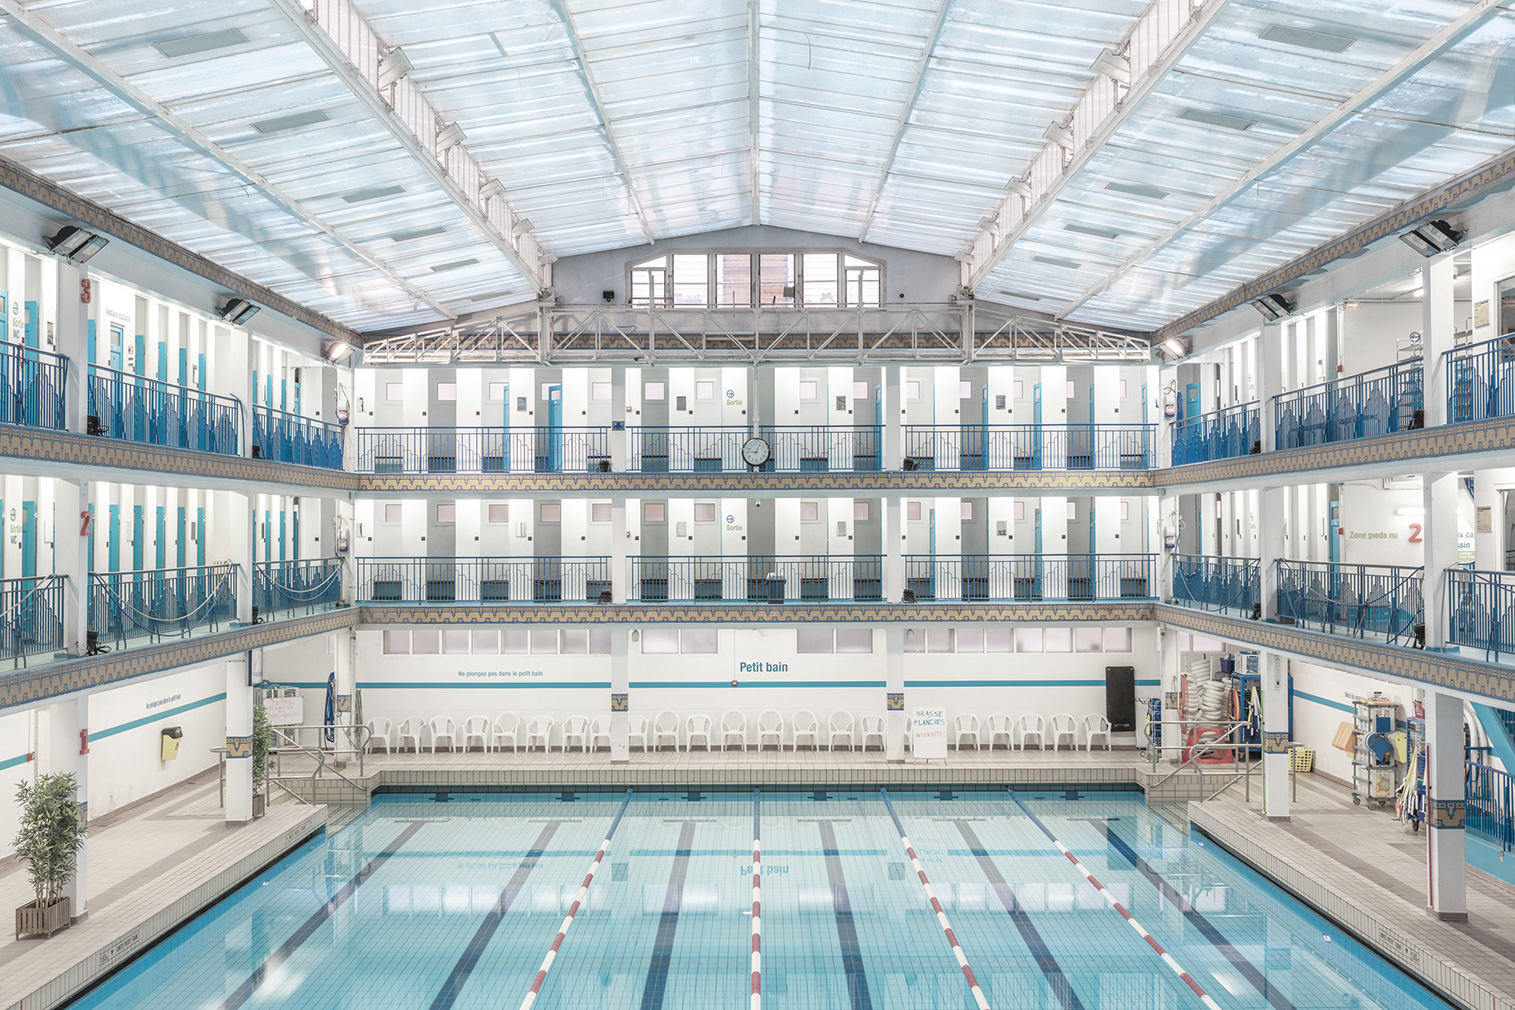 Paris incredible swimming pools photographed by ludwig favre for Piscine pontoise